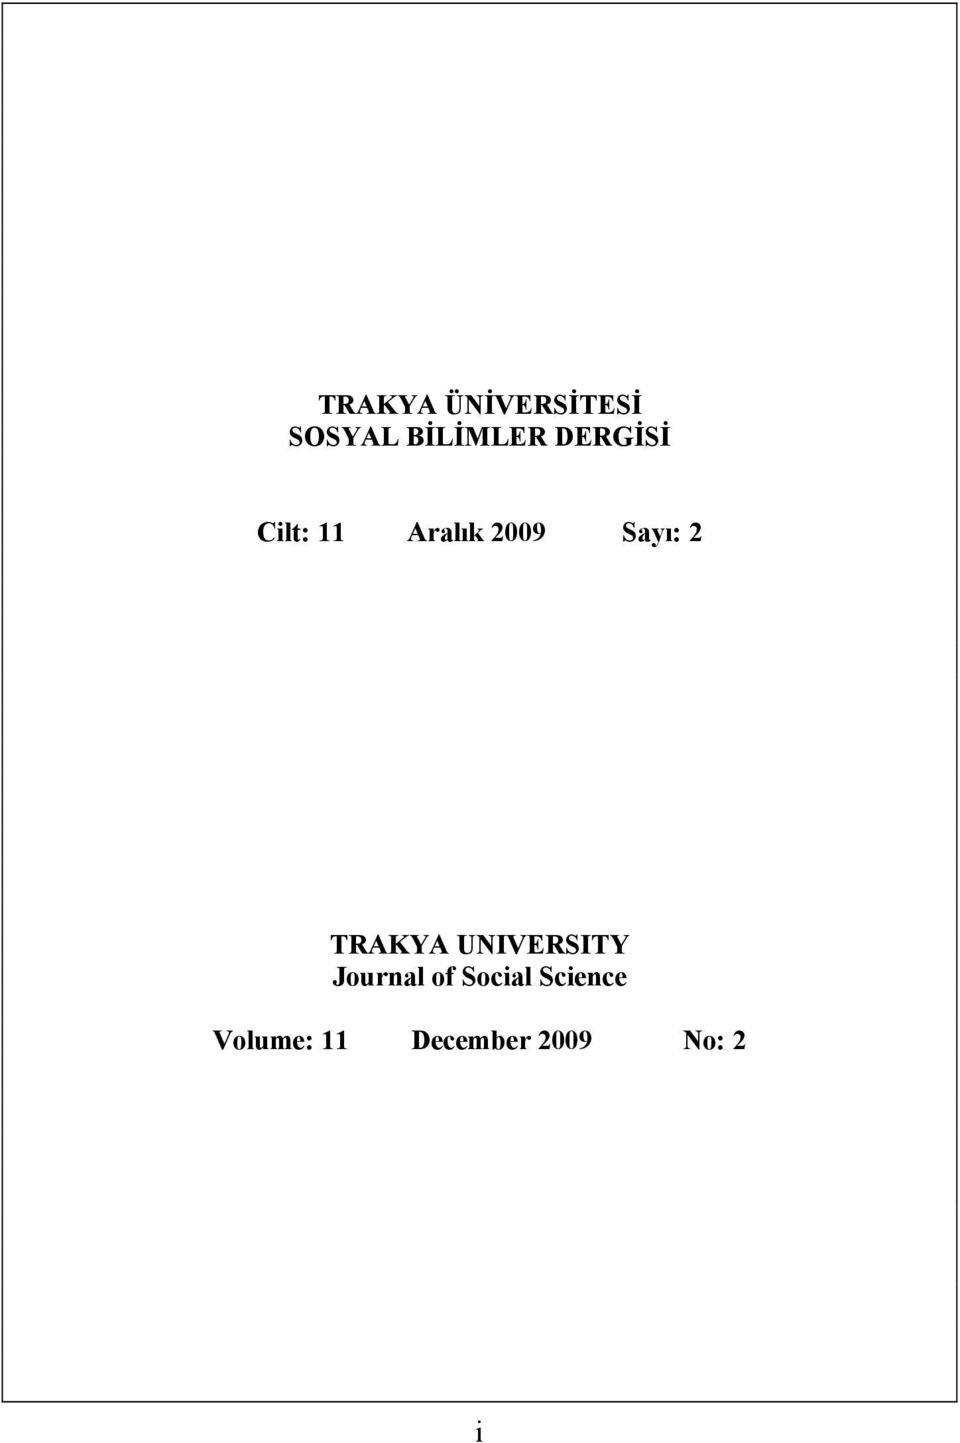 TRAKYA UNIVERSITY Journal of Social